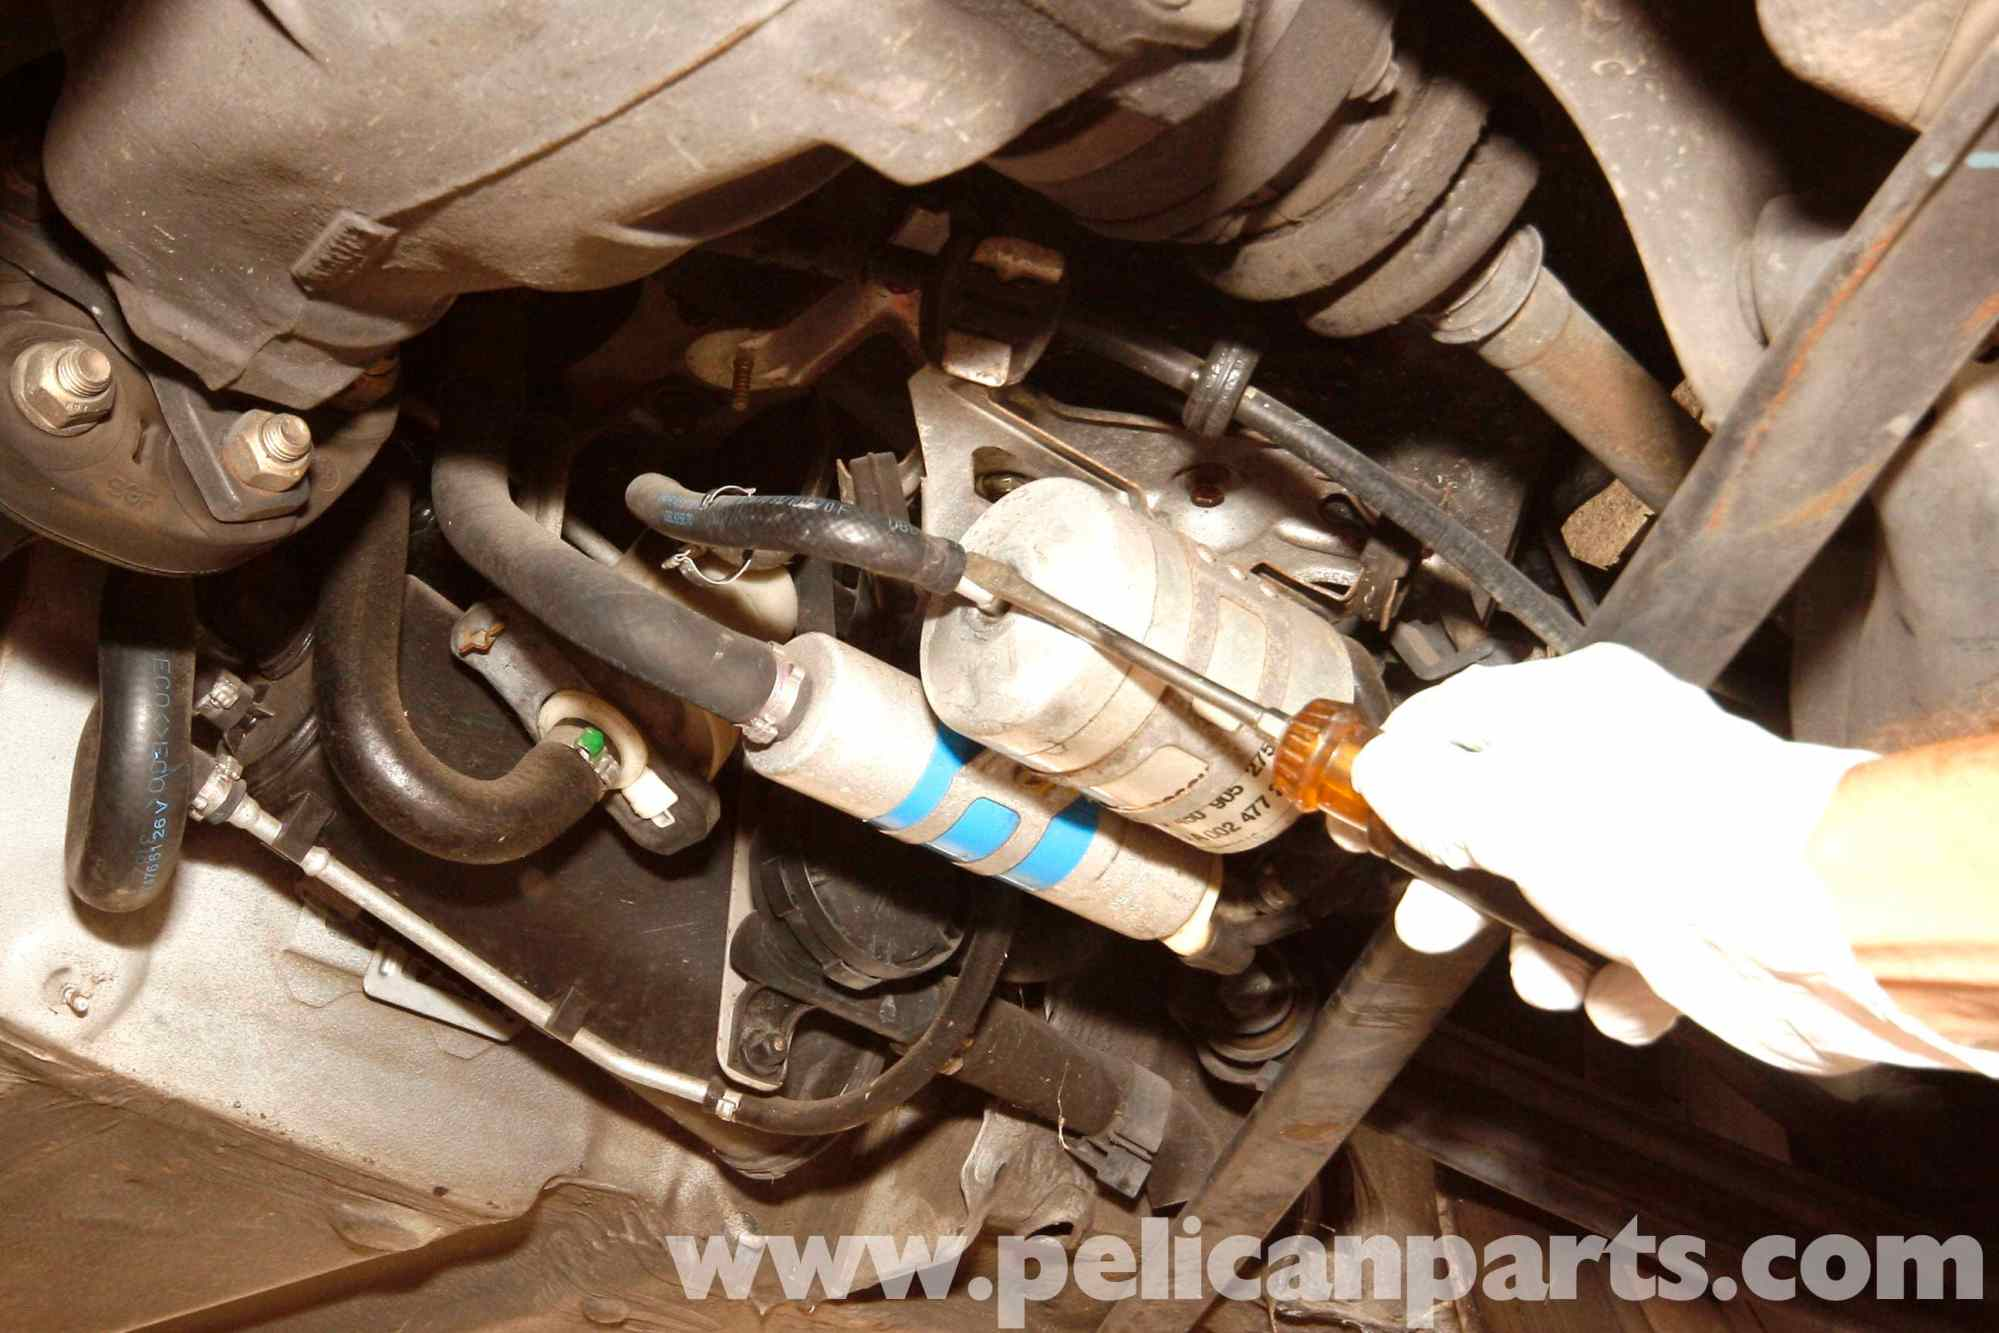 hight resolution of change fuel filter 2005 dodge ram 2500 get free image about wiring change fuel filter 2005 dodge ram 2500 get free image about wiring